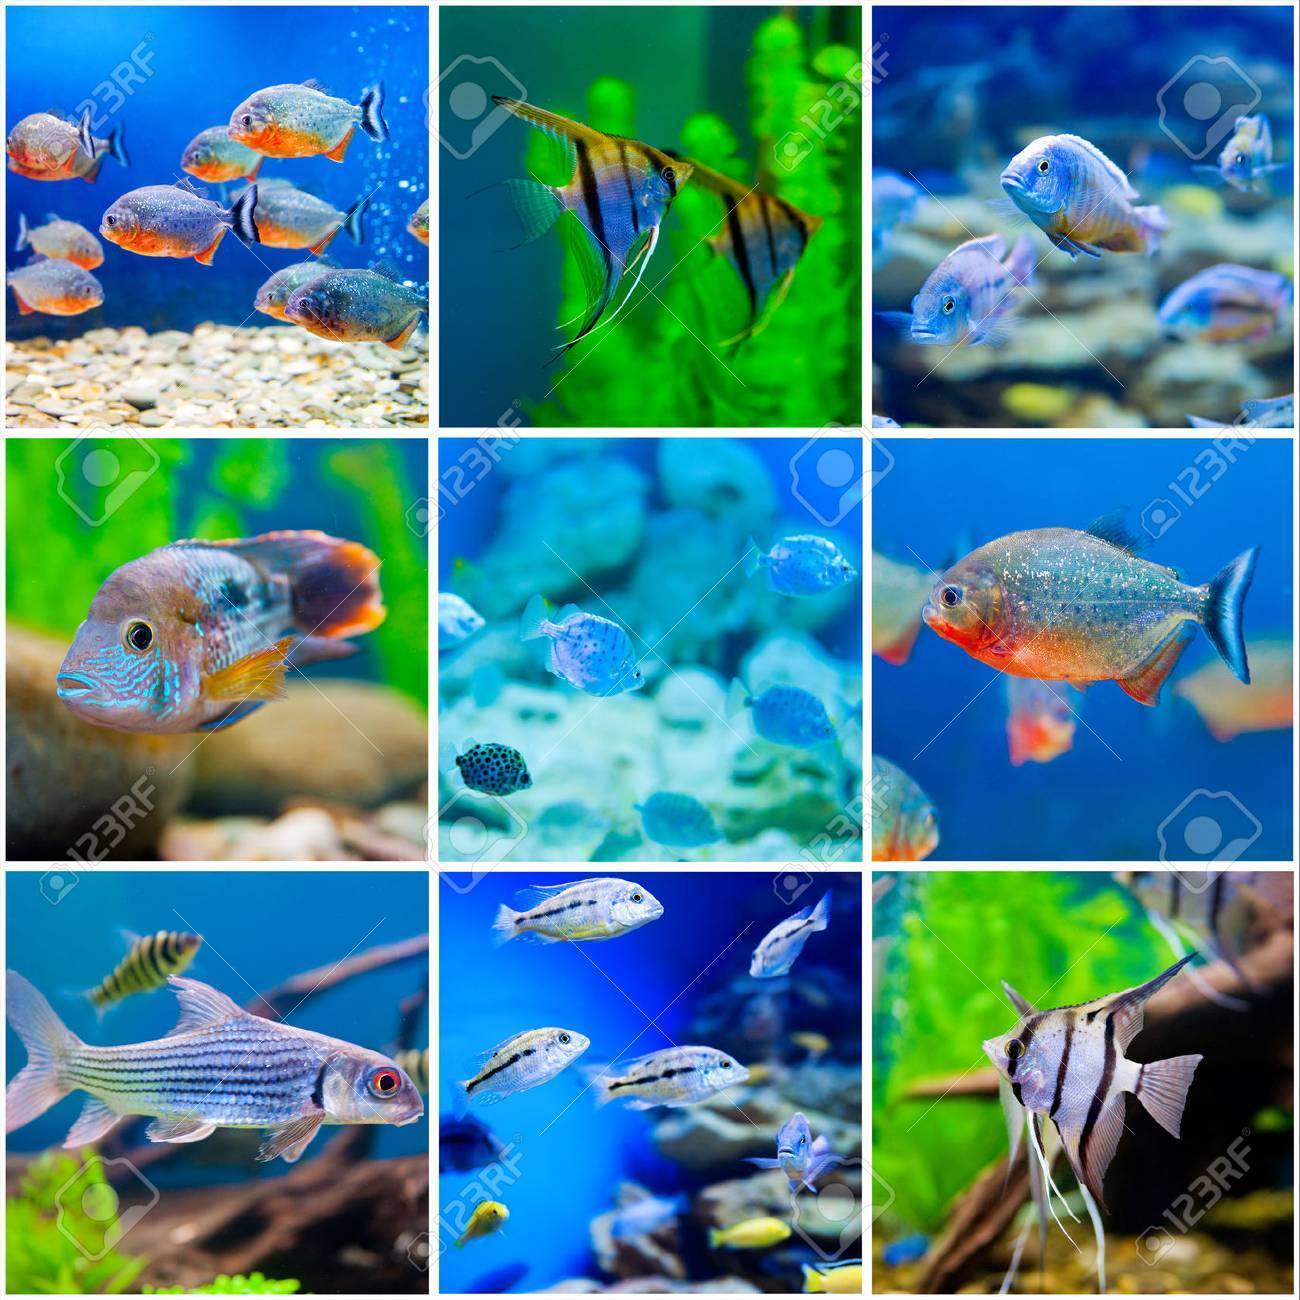 collection photos from saltwater world in aquarium - 37923821